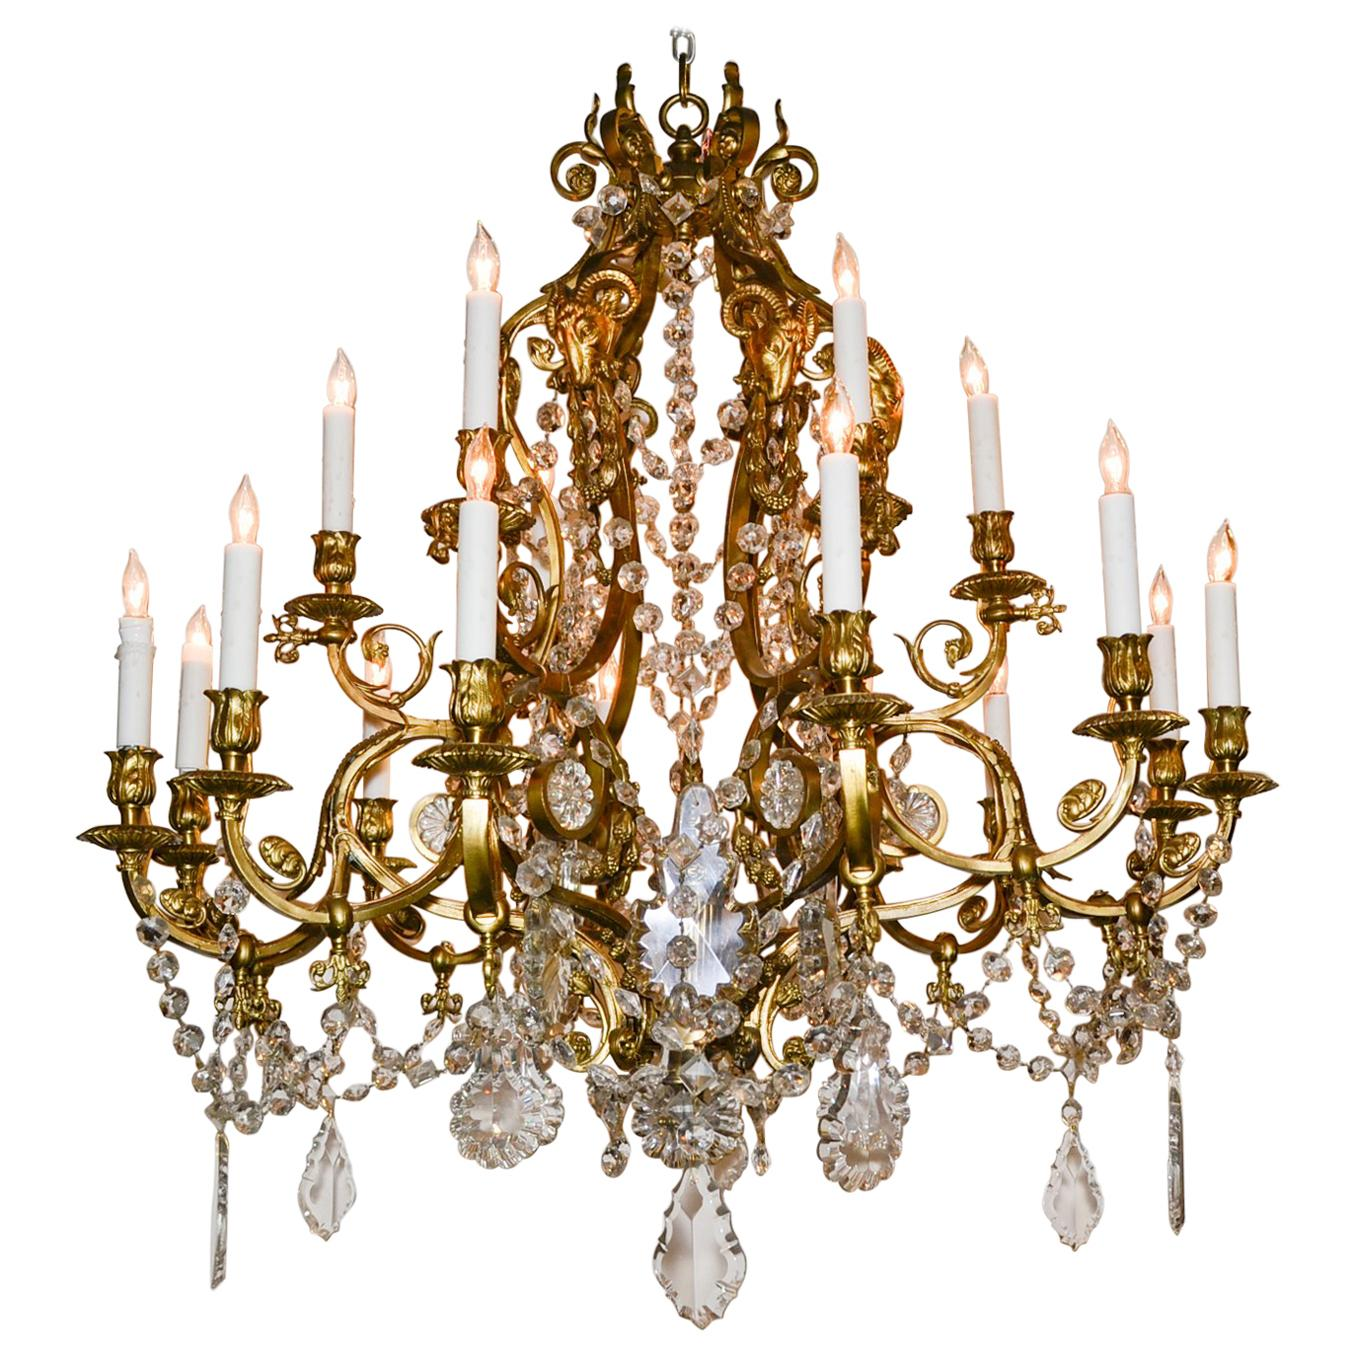 19th Century French Neoclassical Bronze Chandelier